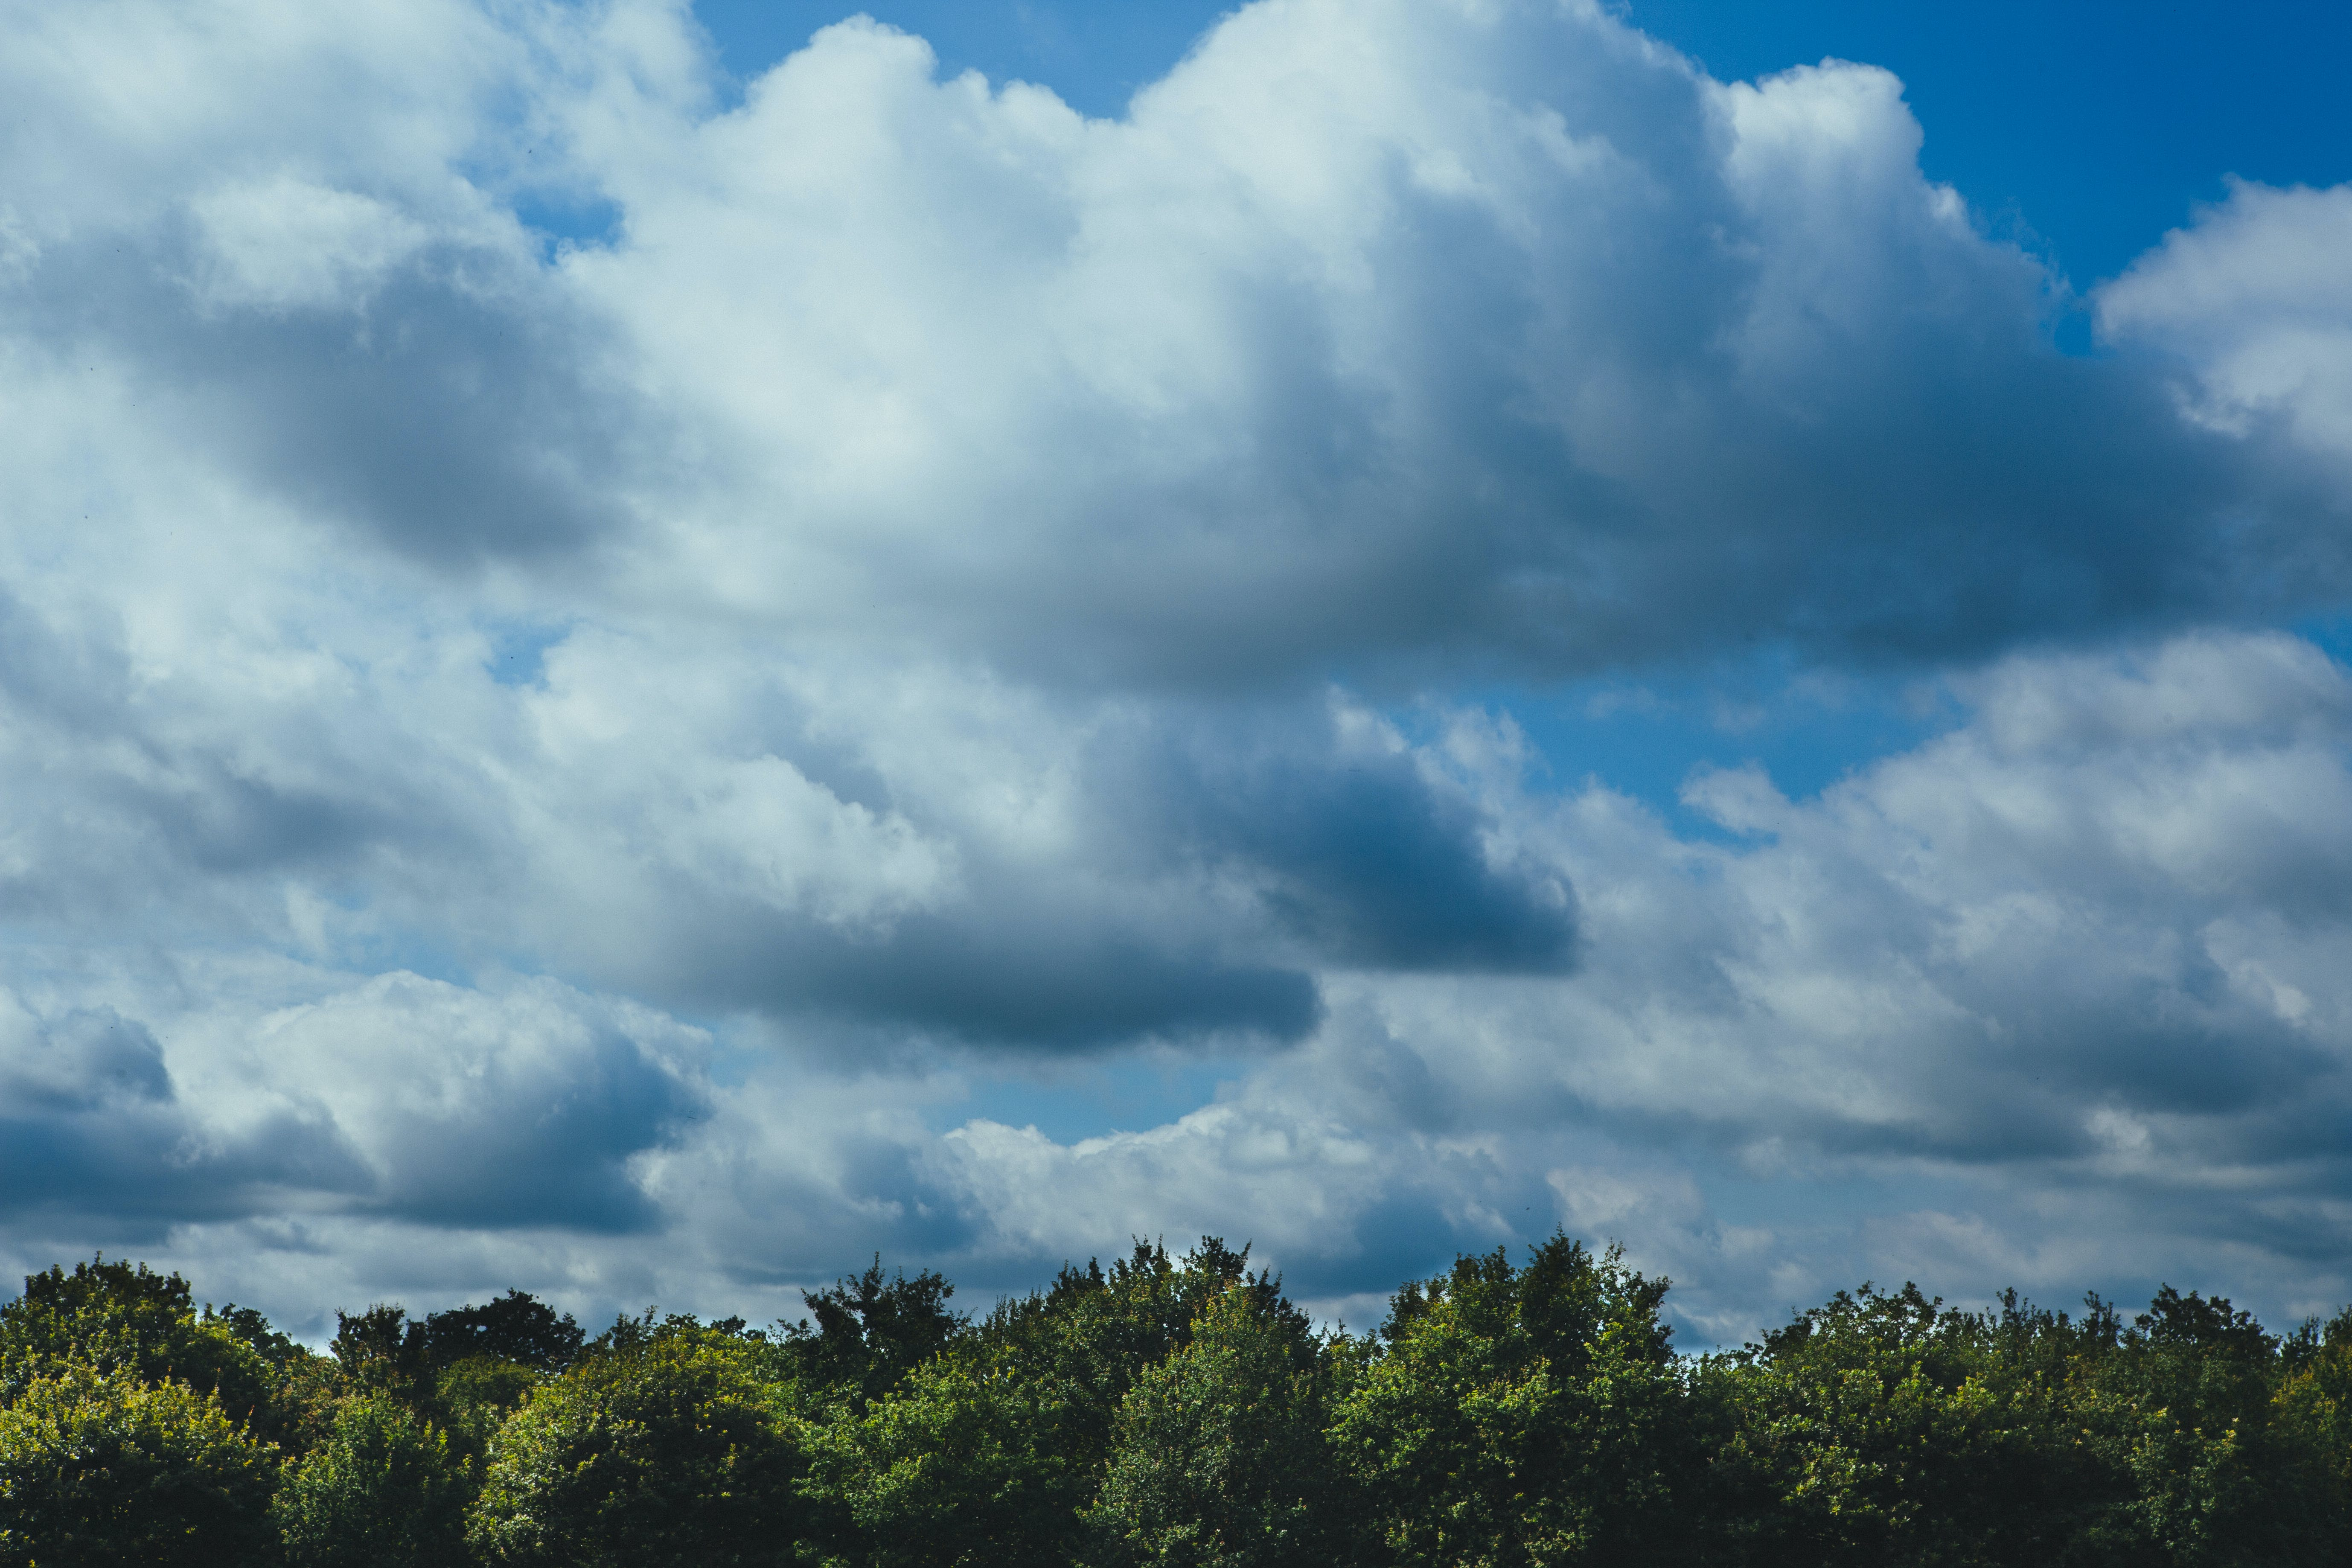 clouds, cloudy, forest